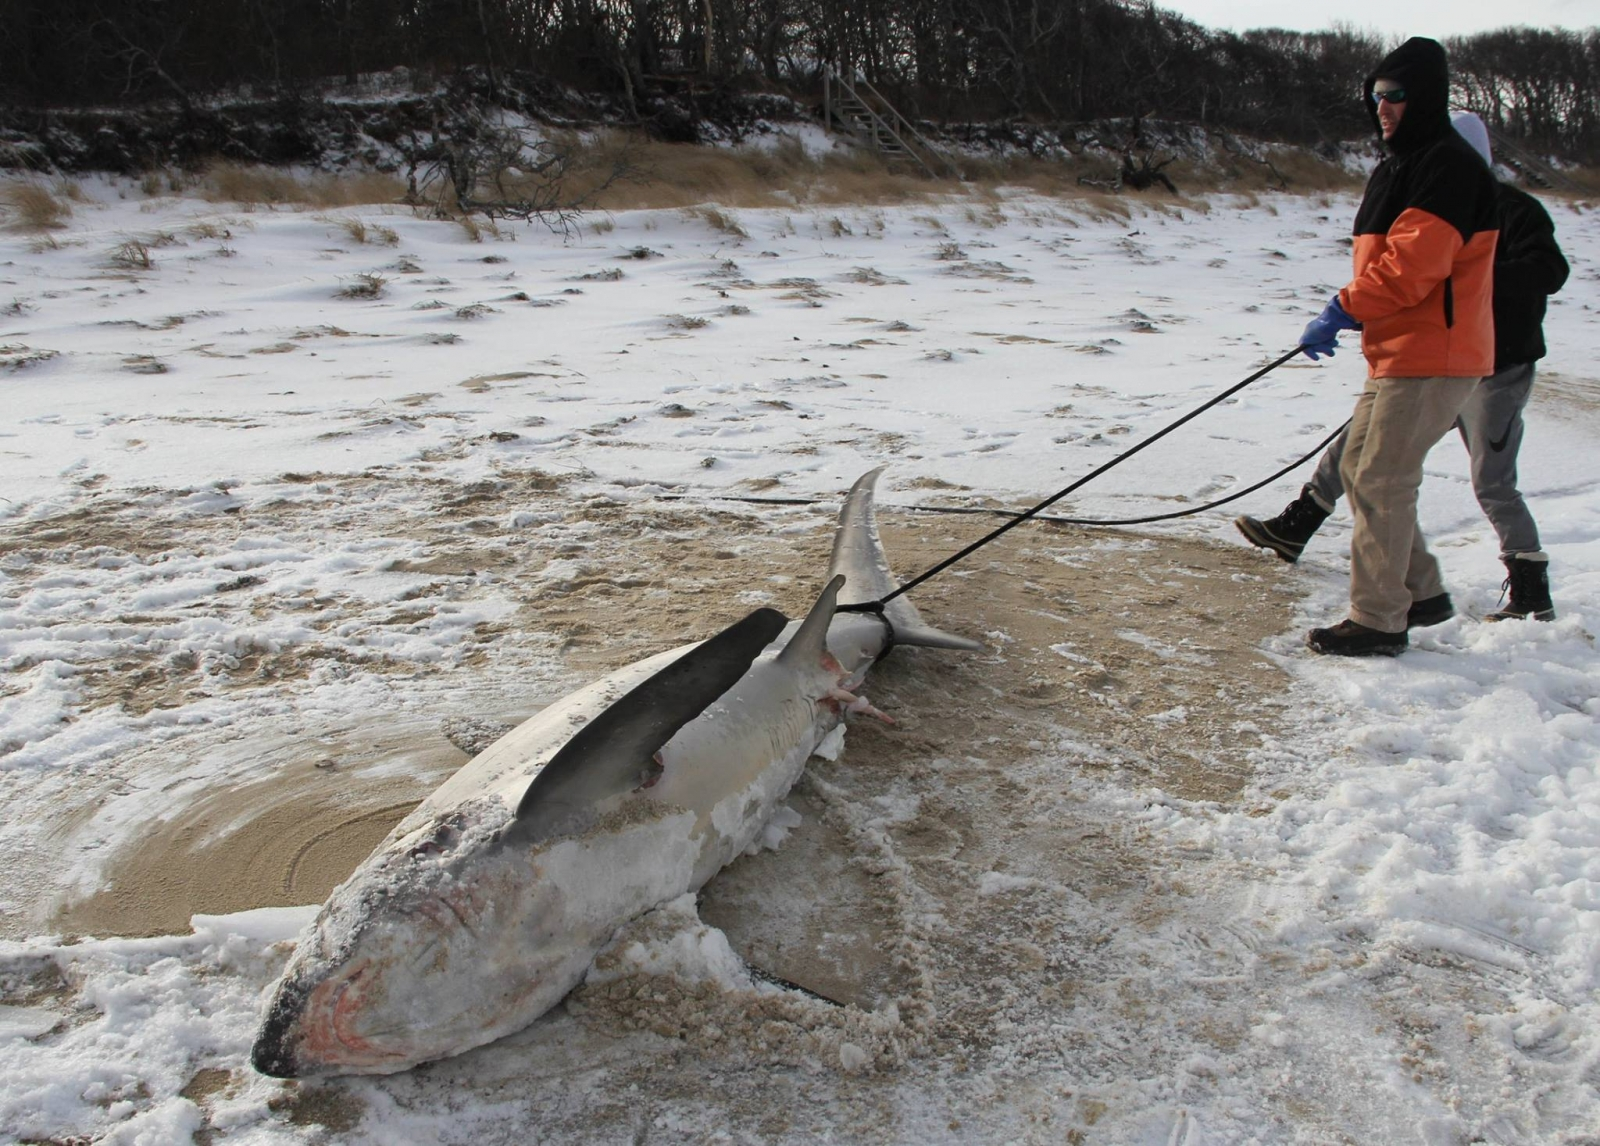 Sharks killed by freezing weather